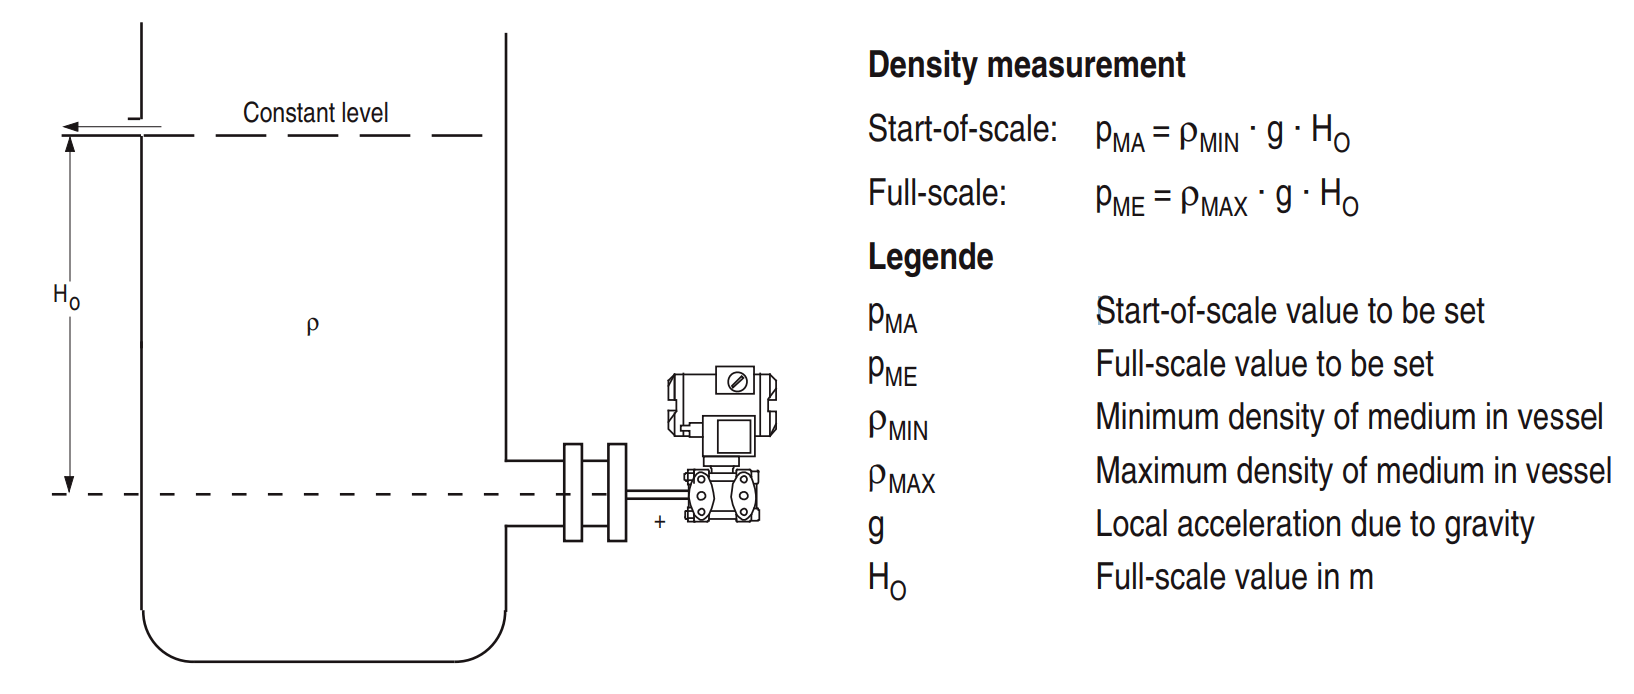 Open Tank Density Measurement using Pressure Transmitter